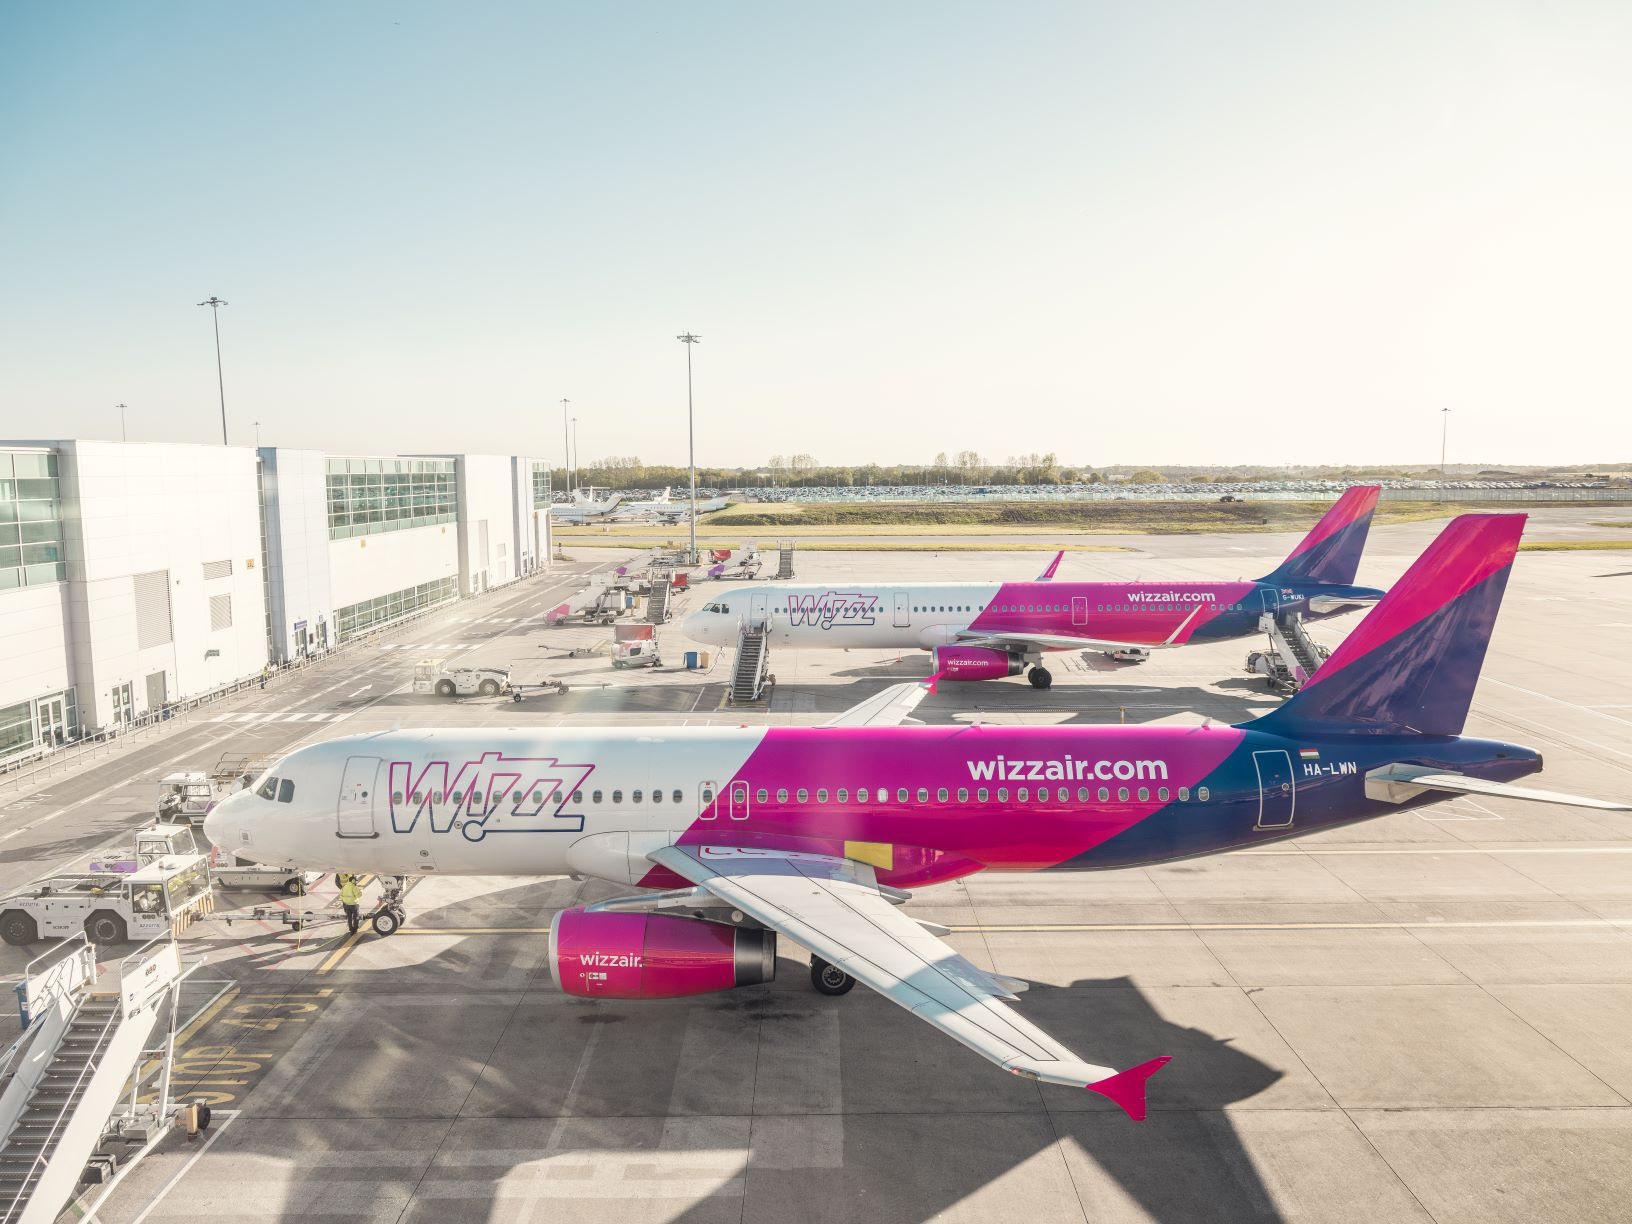 WizzAir helps Hungarians get home – Daily News Hungary